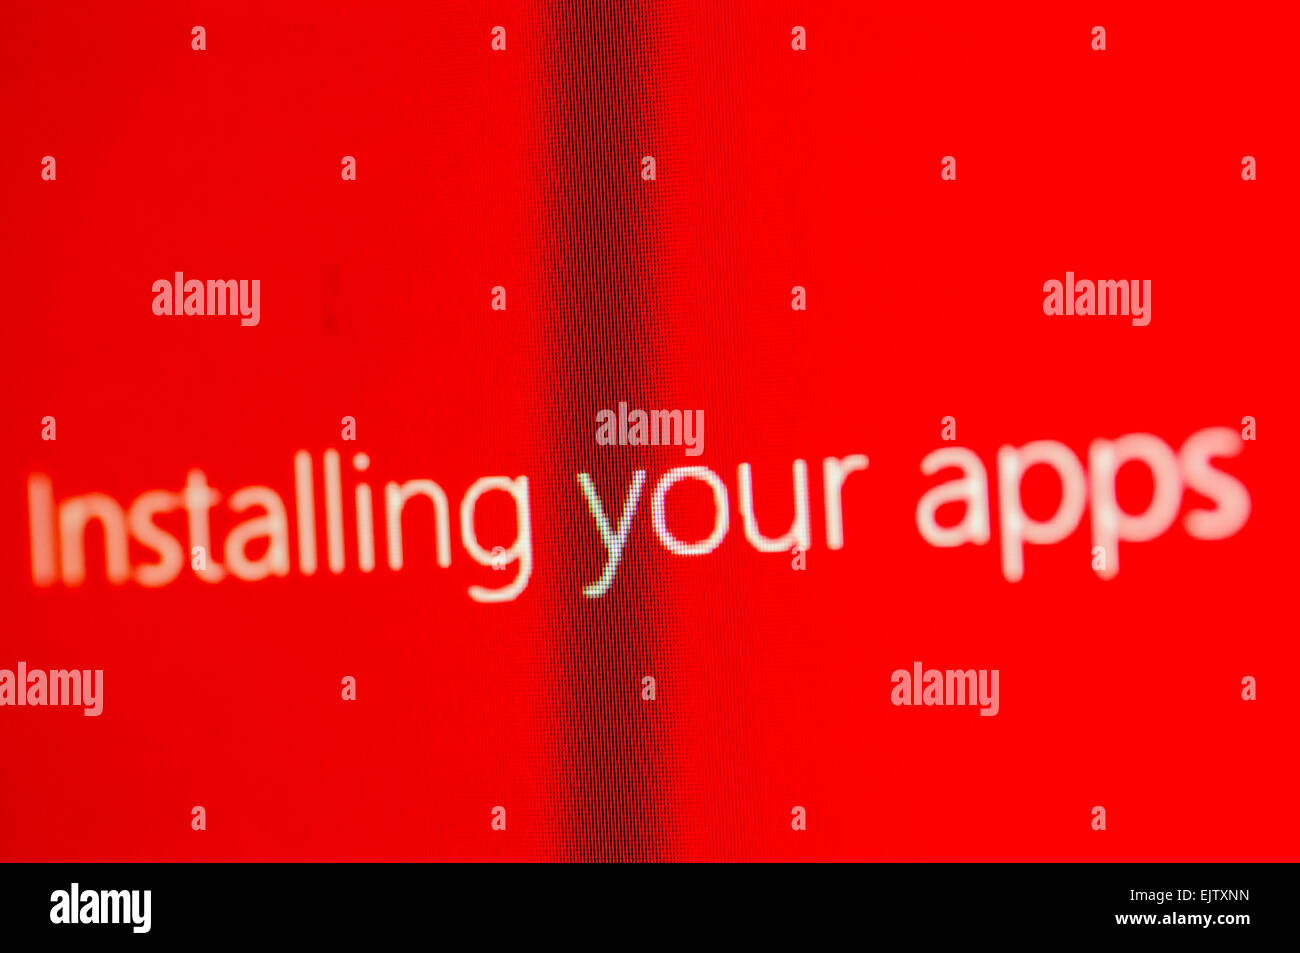 Windows 10 screen saying 'Installing your apps' - Stock Image